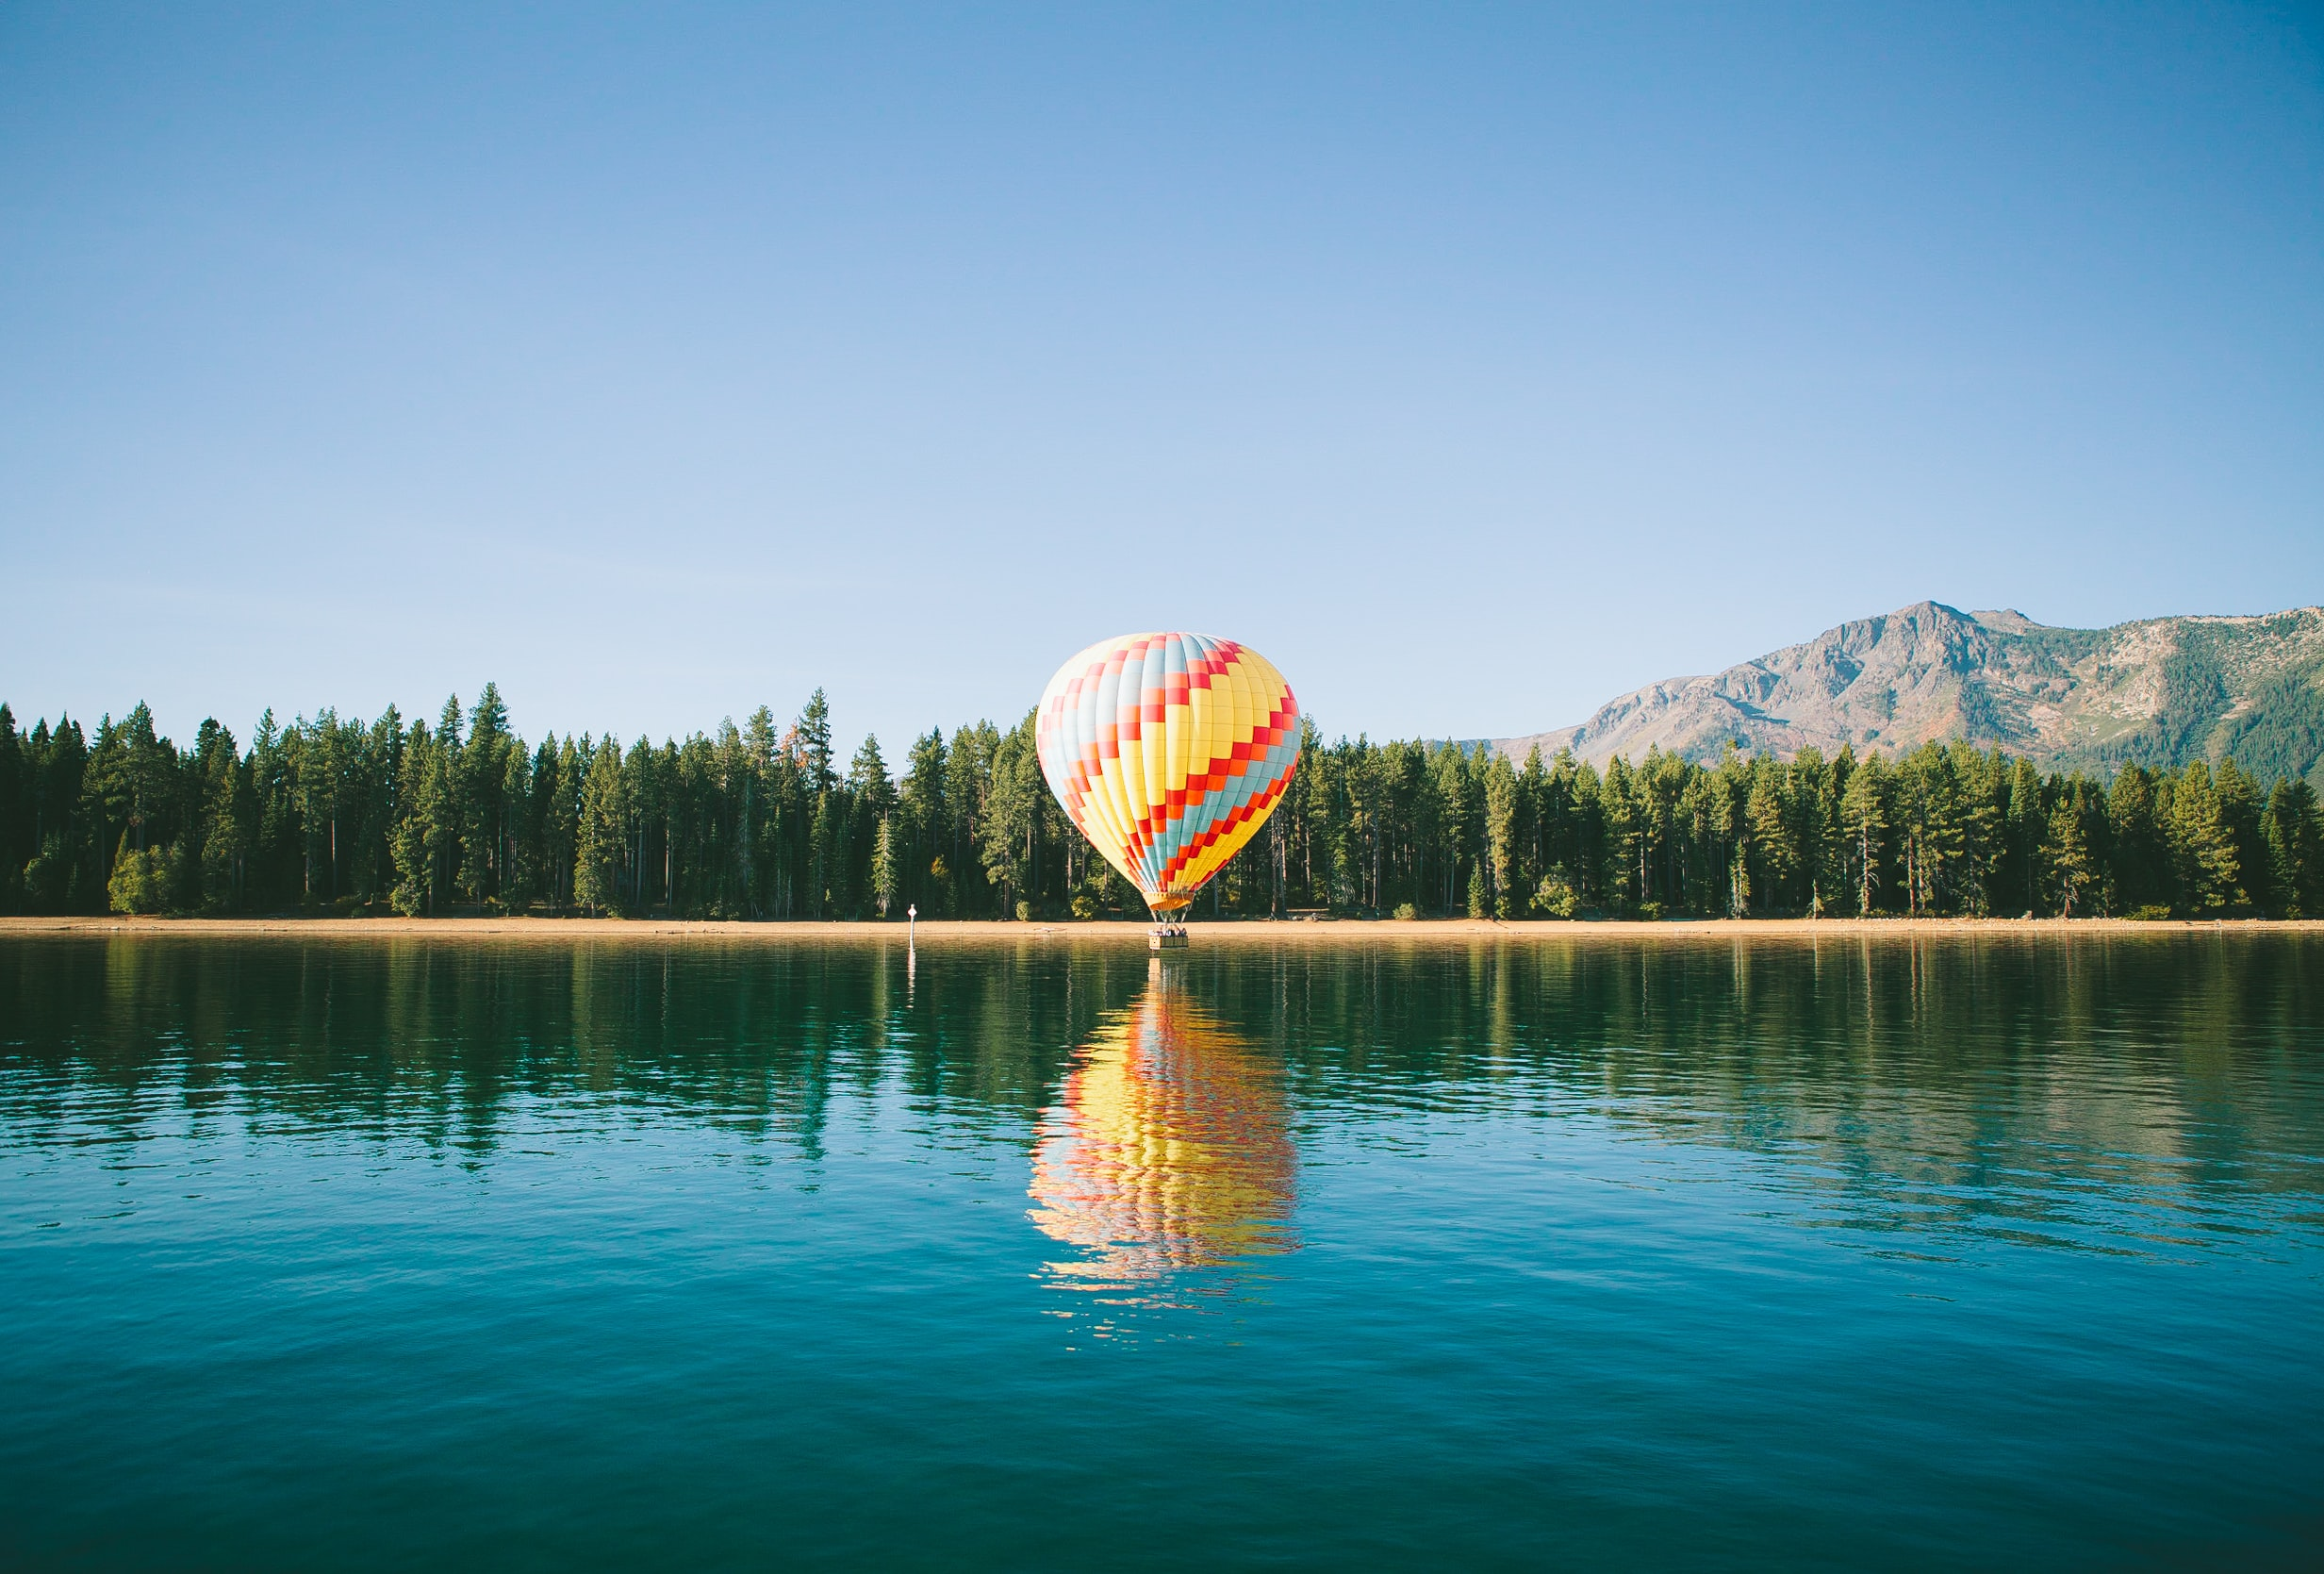 A hot air balloon landing on a still lake in the mountains